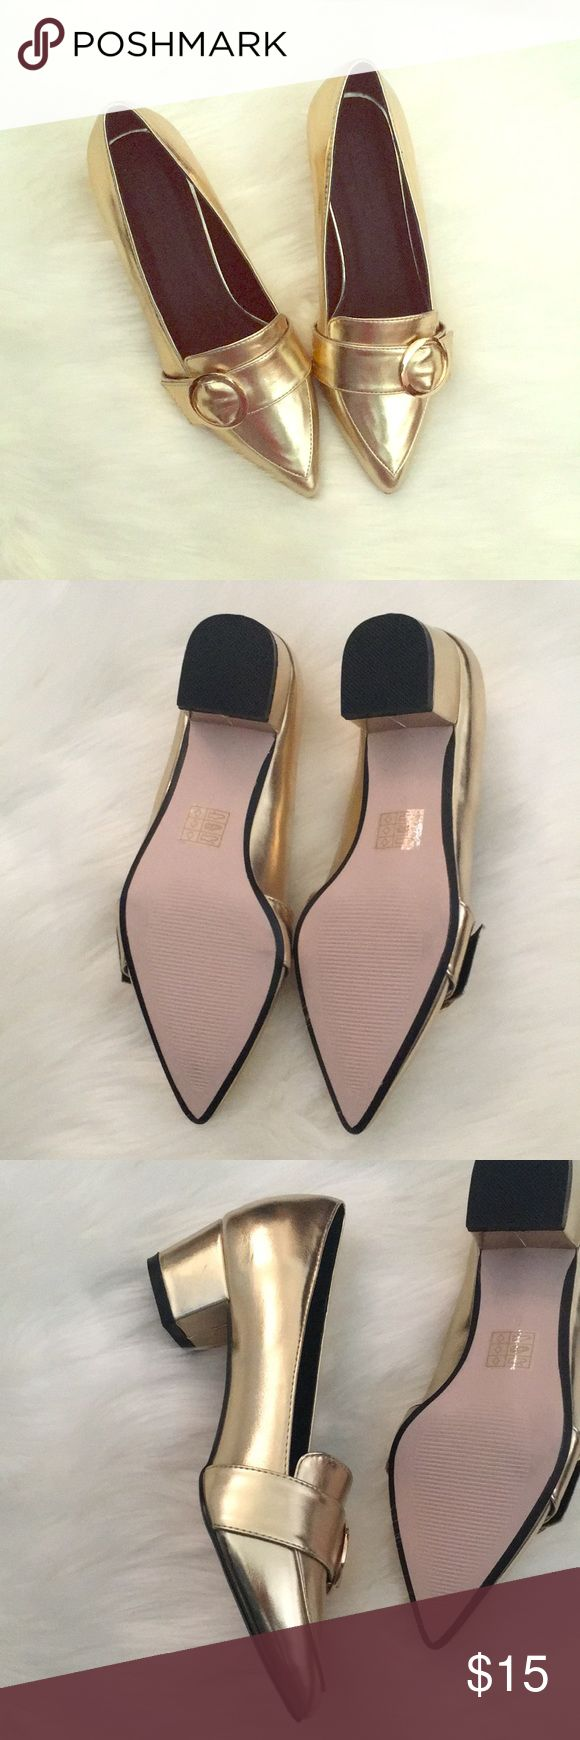 NWT ASOS pointed loafers Brand new condition  Never wear  Heel Height- 6cm/ 2 inch  Ship it within 48 hours Shoes Flats & Loafers